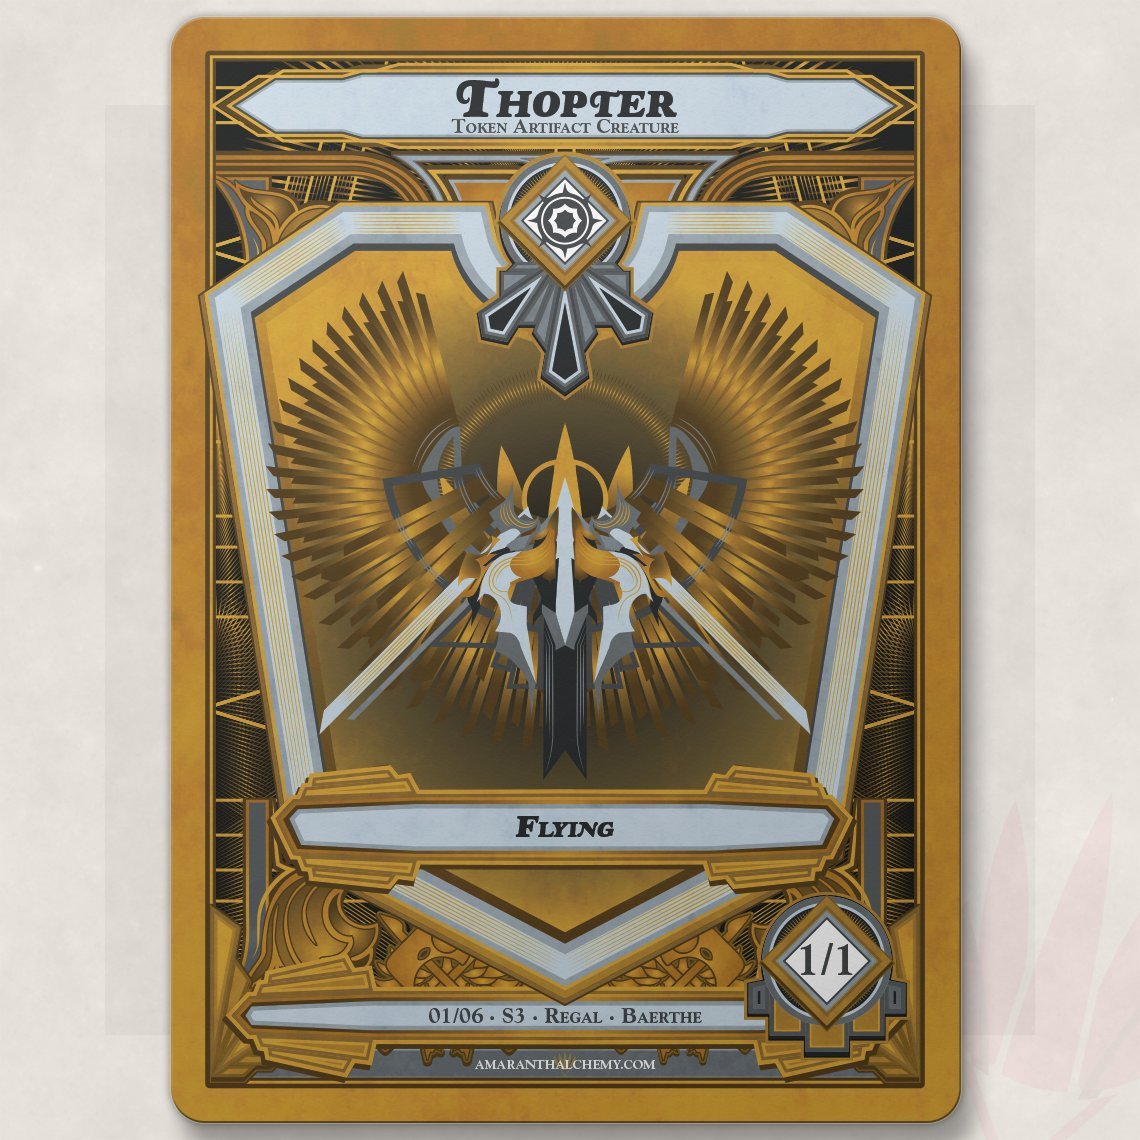 Finished the frame and first token for my new series of #mtg #tokens based on Art Deco design. Weirdly, I went for a challenge this month and did it entirely in #AdobeIllustrator   Available this month only on my Patreon:  #Design #Art #artDeco #illustrator